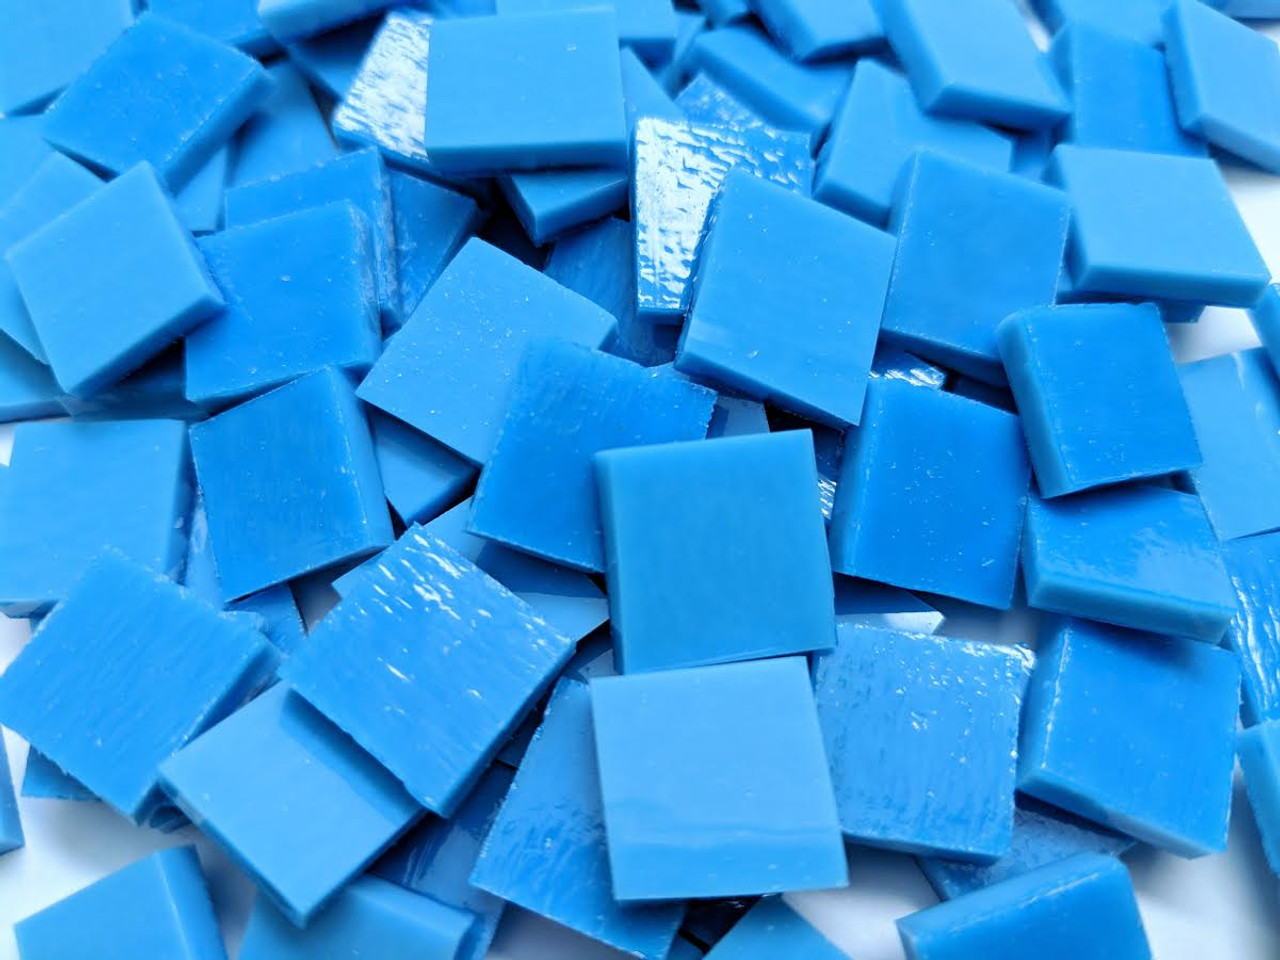 Bulk Discount - Reactive Blue Opal Stained Glass Mosaic Tiles COE 96